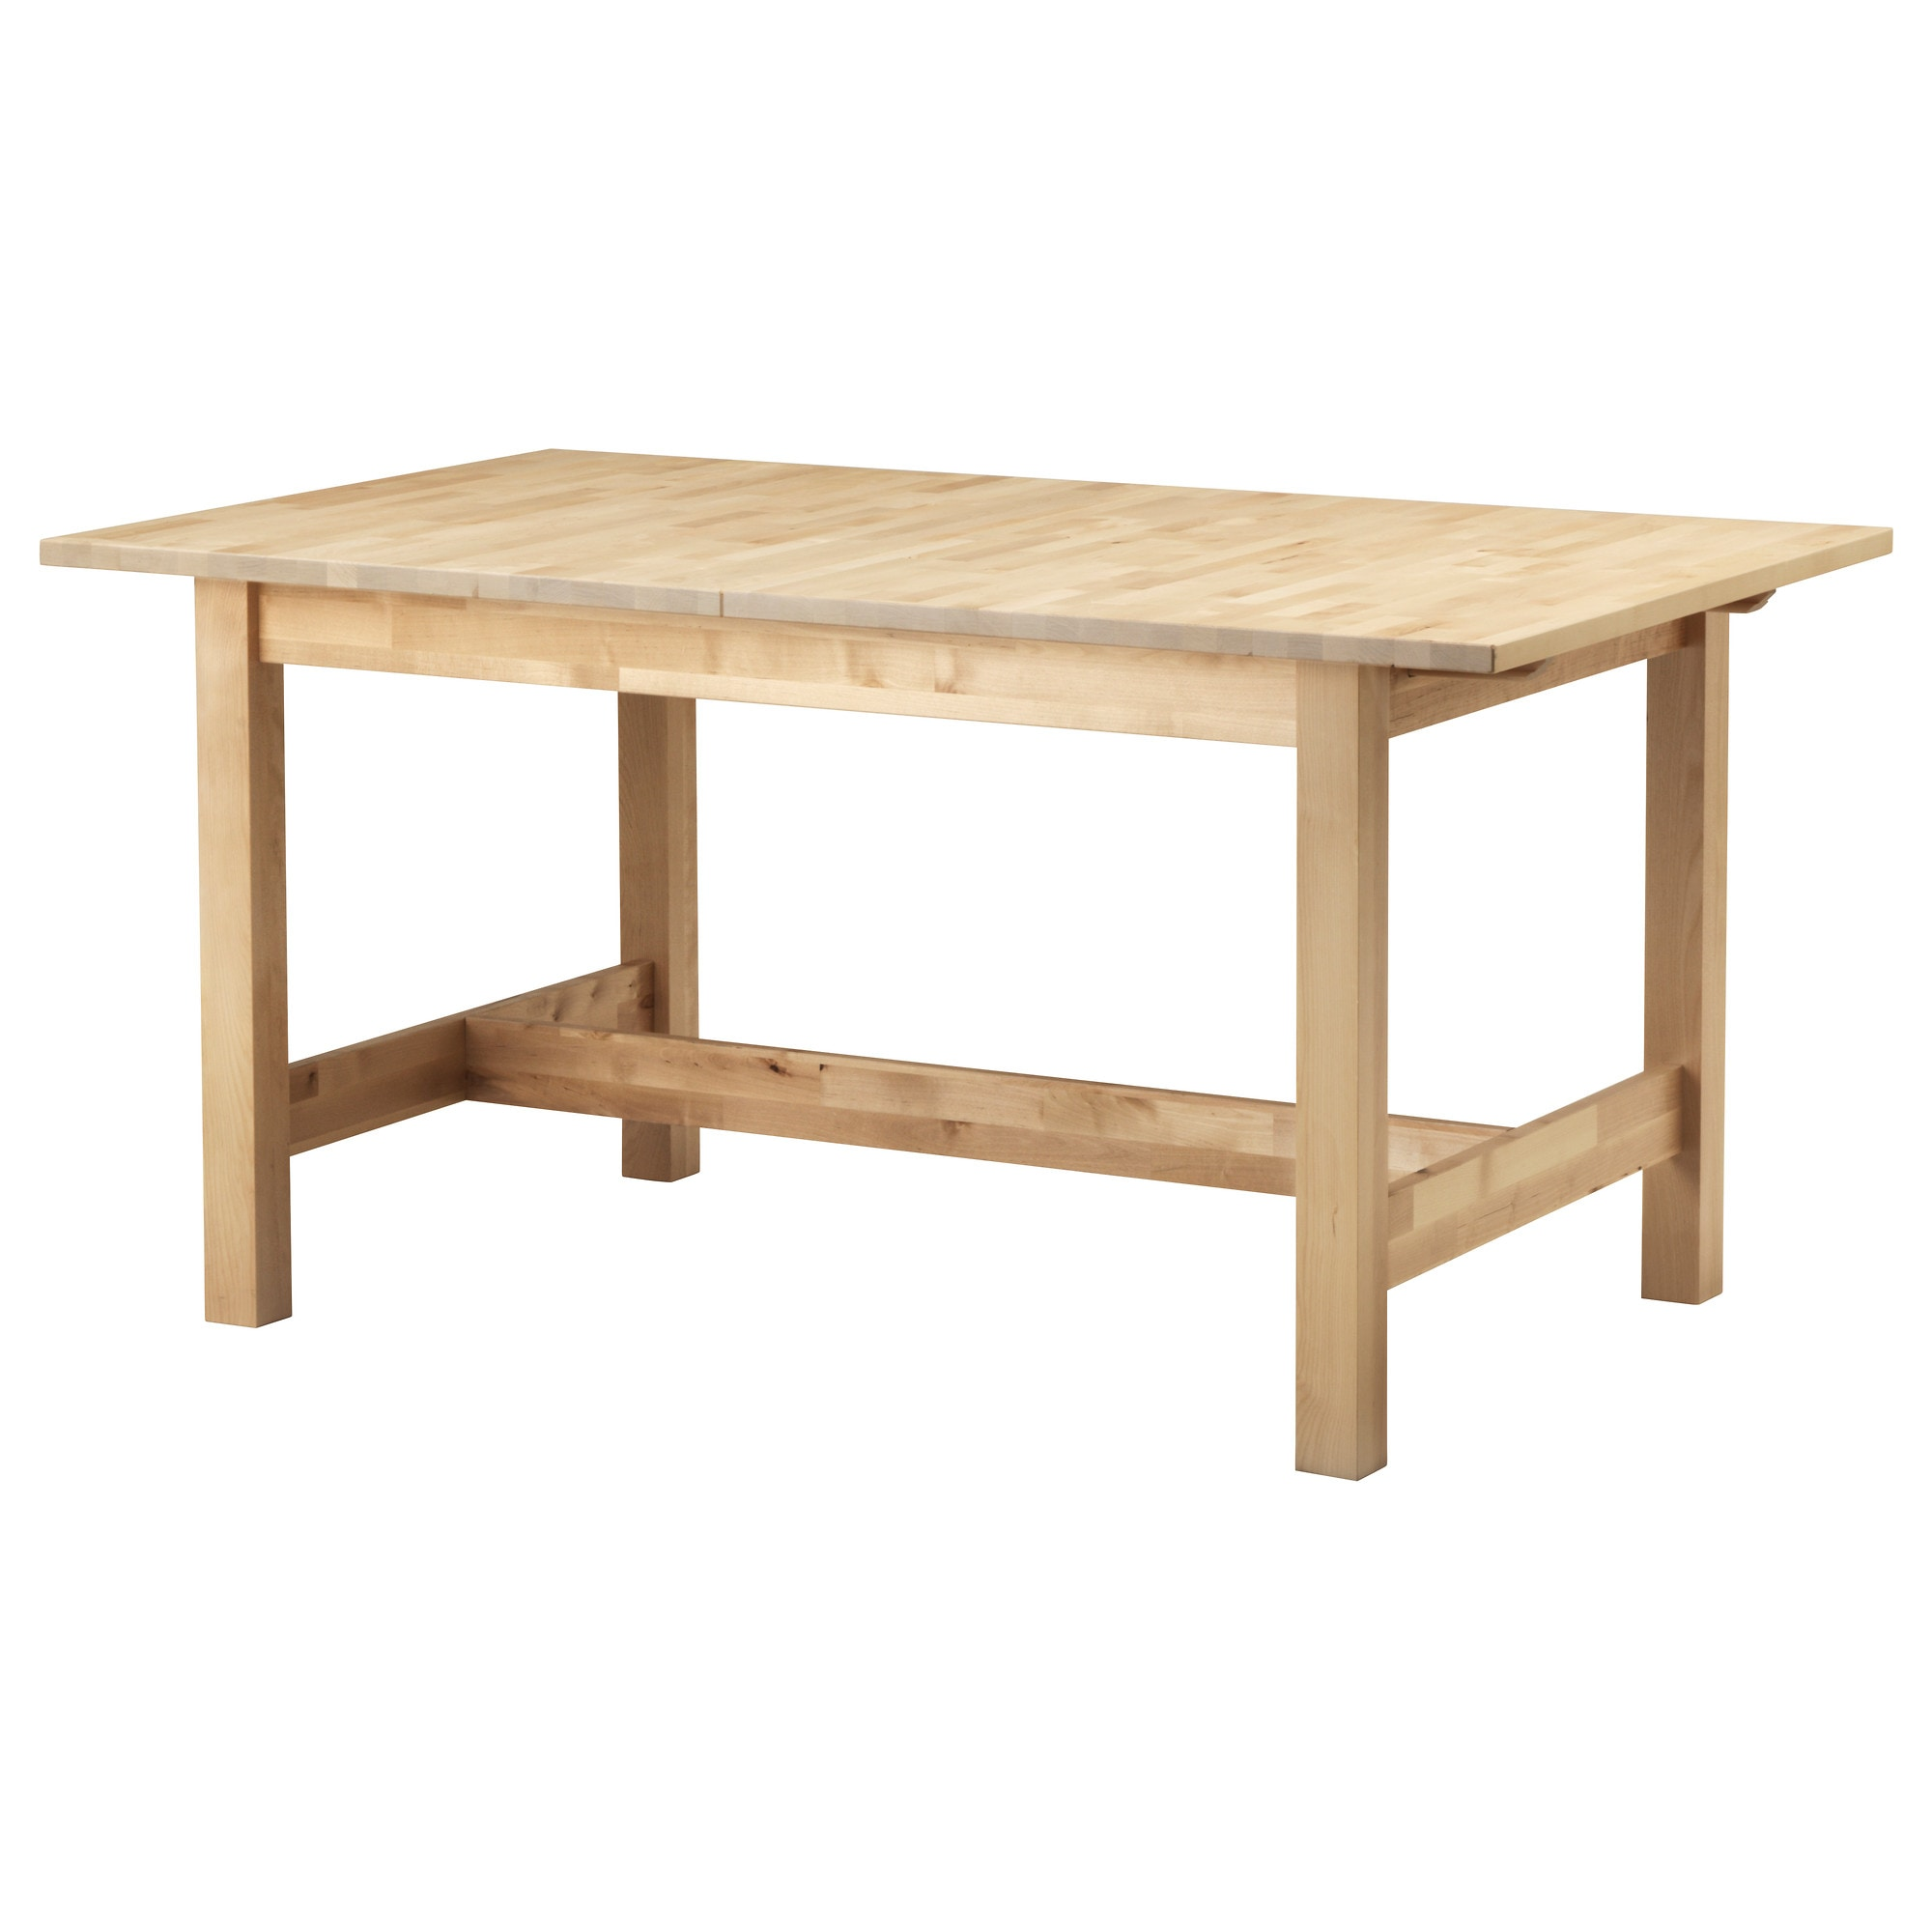 Dining Tables For 6 IKEA